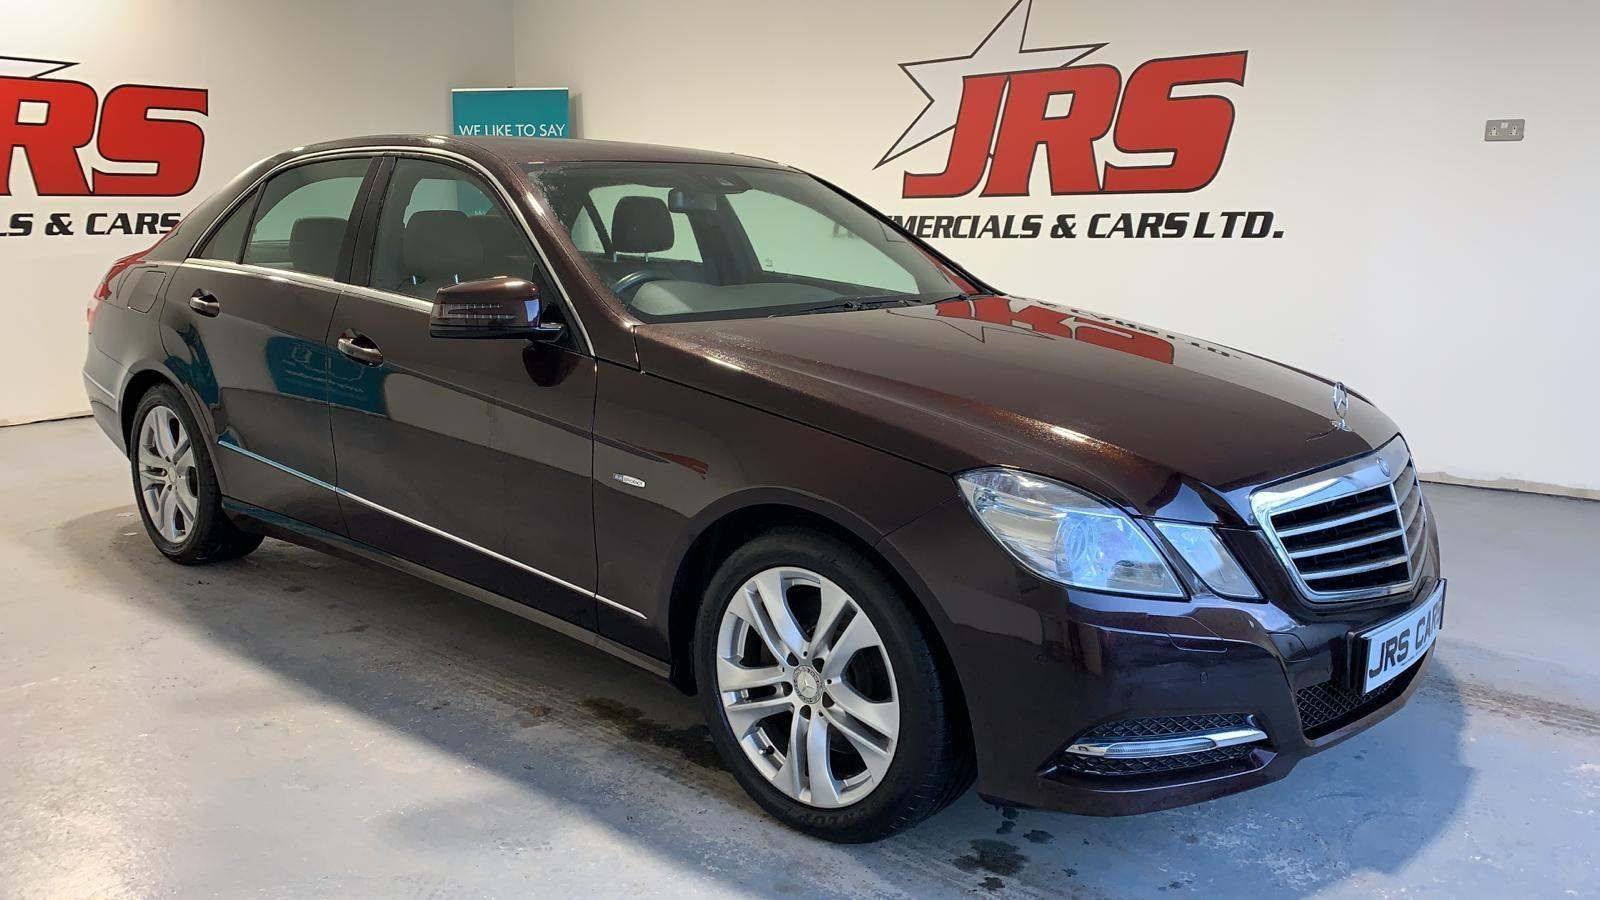 2010 MERCEDES BENZ E Class 2.1 E250 CDI BlueEFFICIENCY Avantgarde Diesel Automatic **Full Leather-SatNav** – J R S Commercials And Cars Dungannon